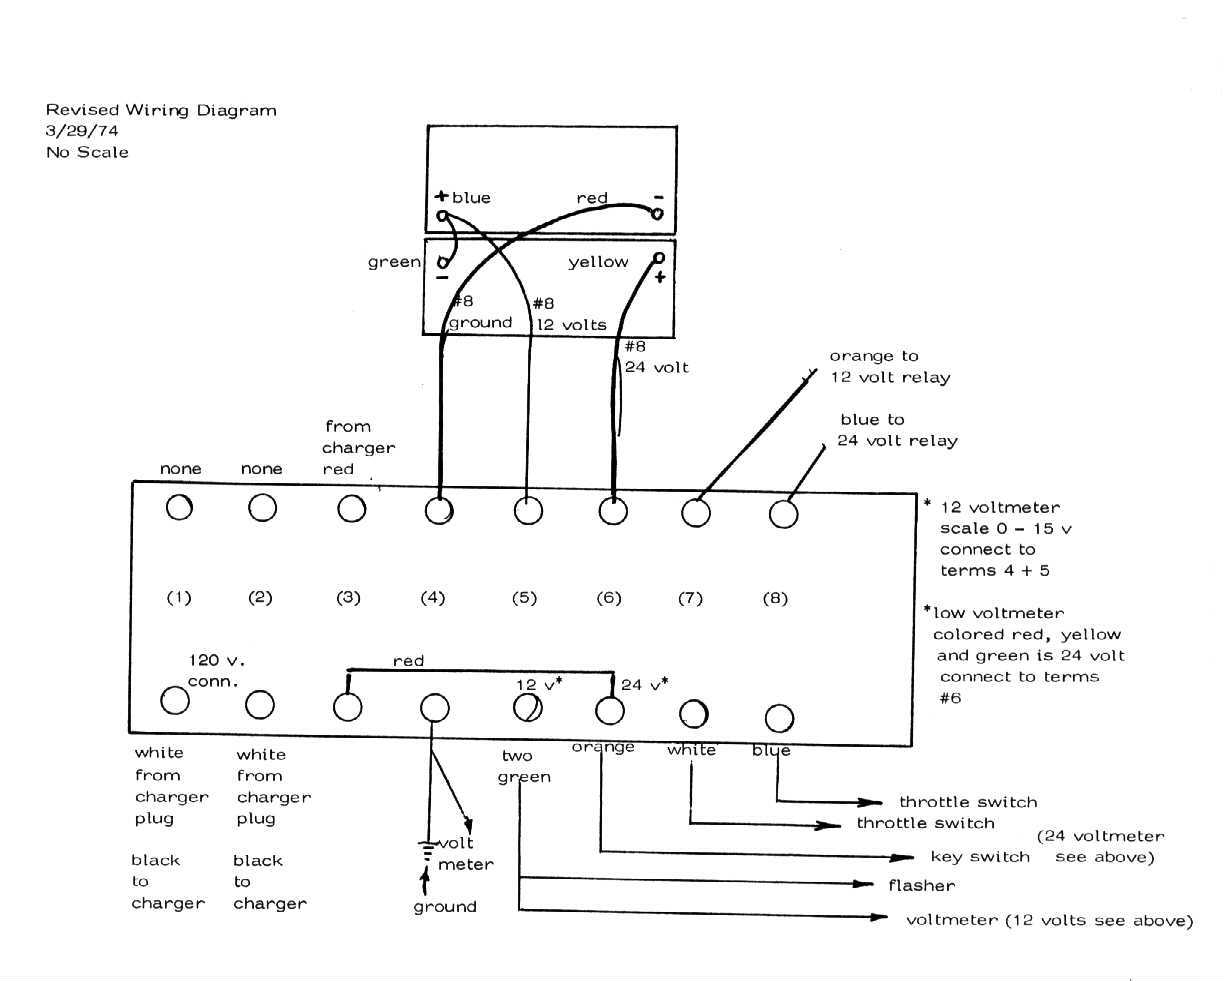 aurepg17 atb motor wiring diagram dolgular com alumapro cap 15 wiring diagram at bakdesigns.co